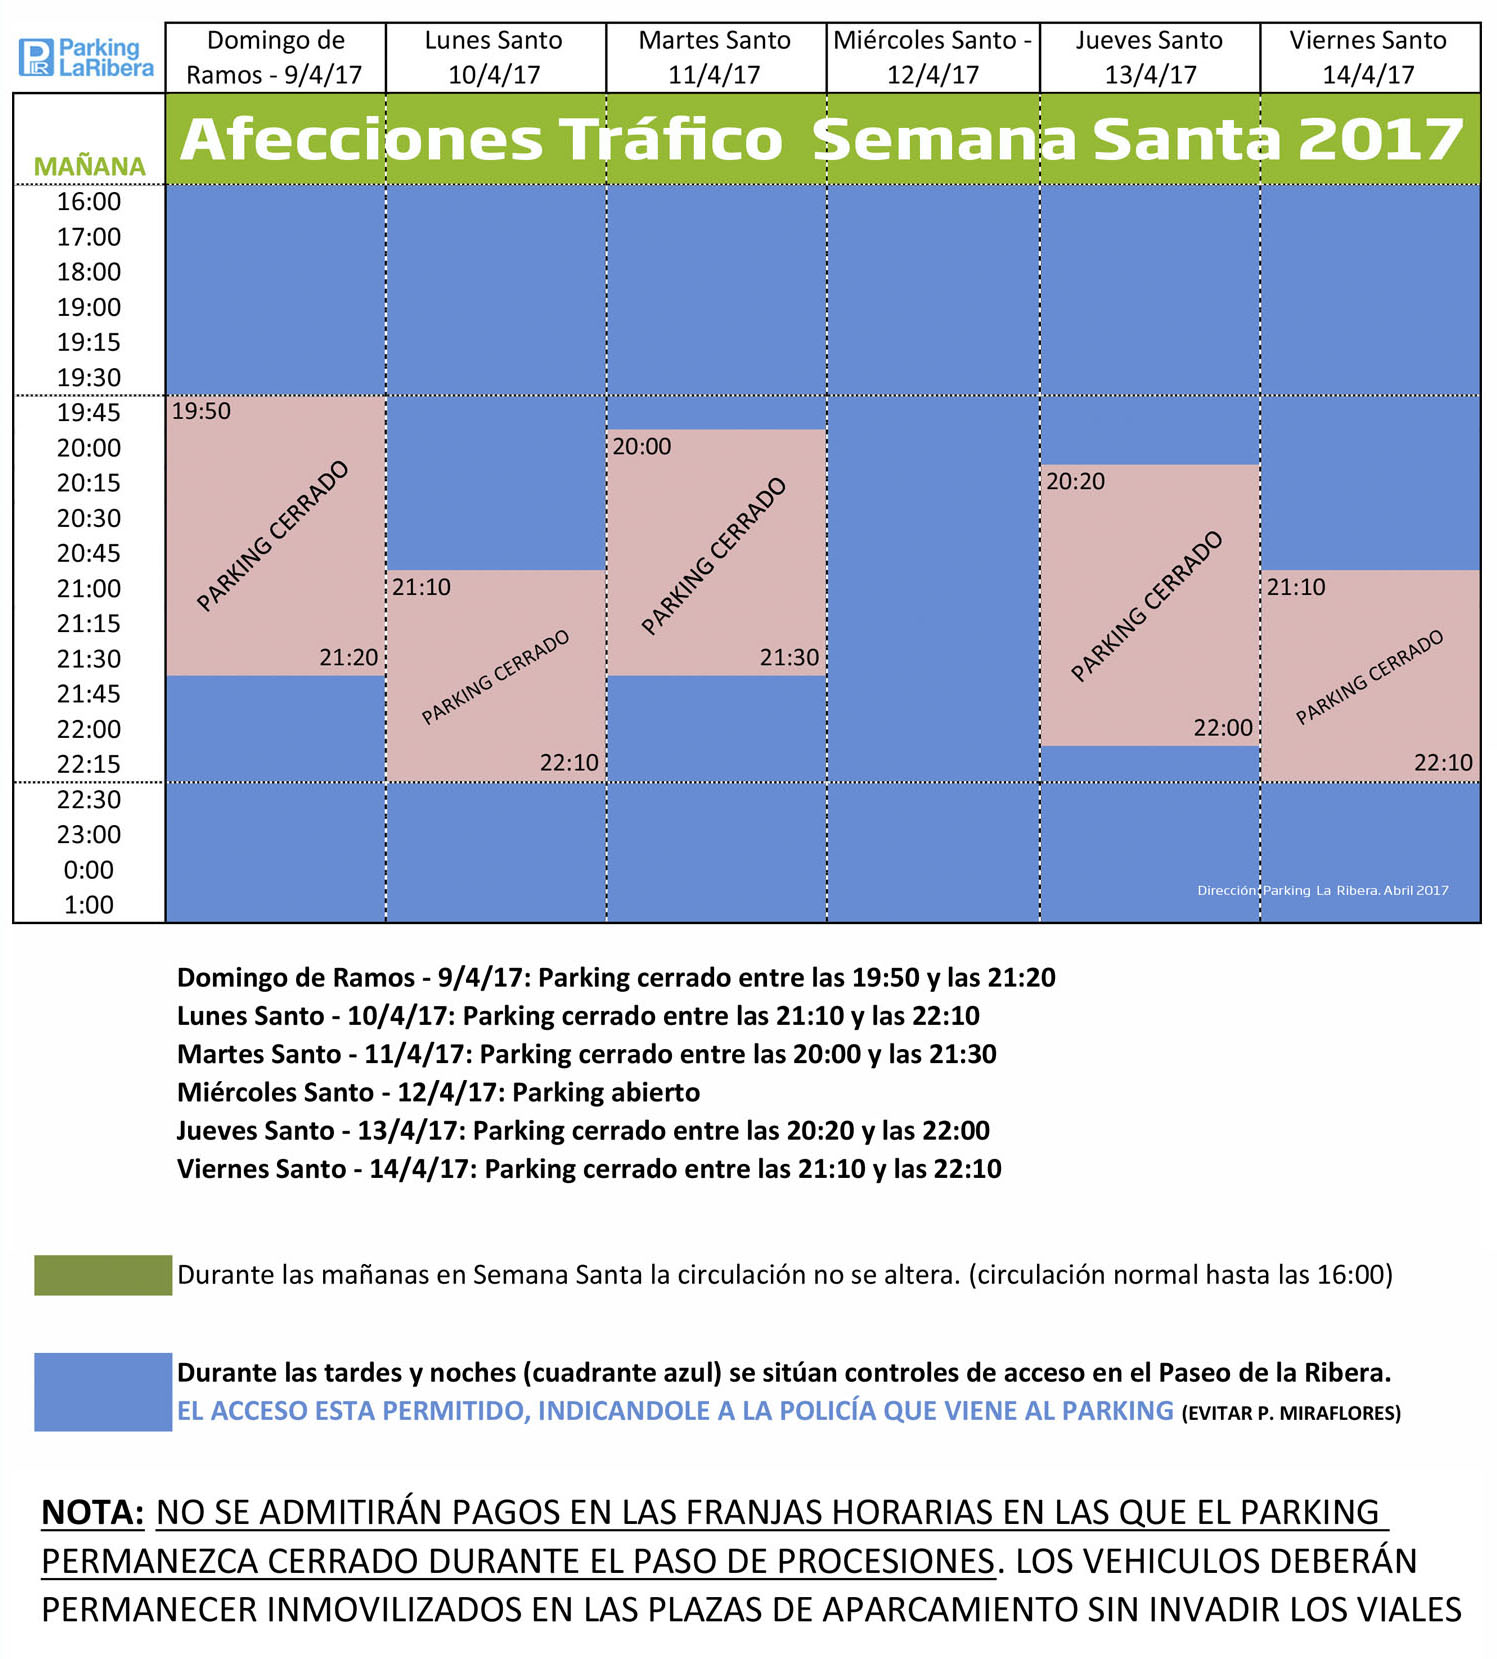 Parking-La-Ribera-Horario-Semana-Santa-2017